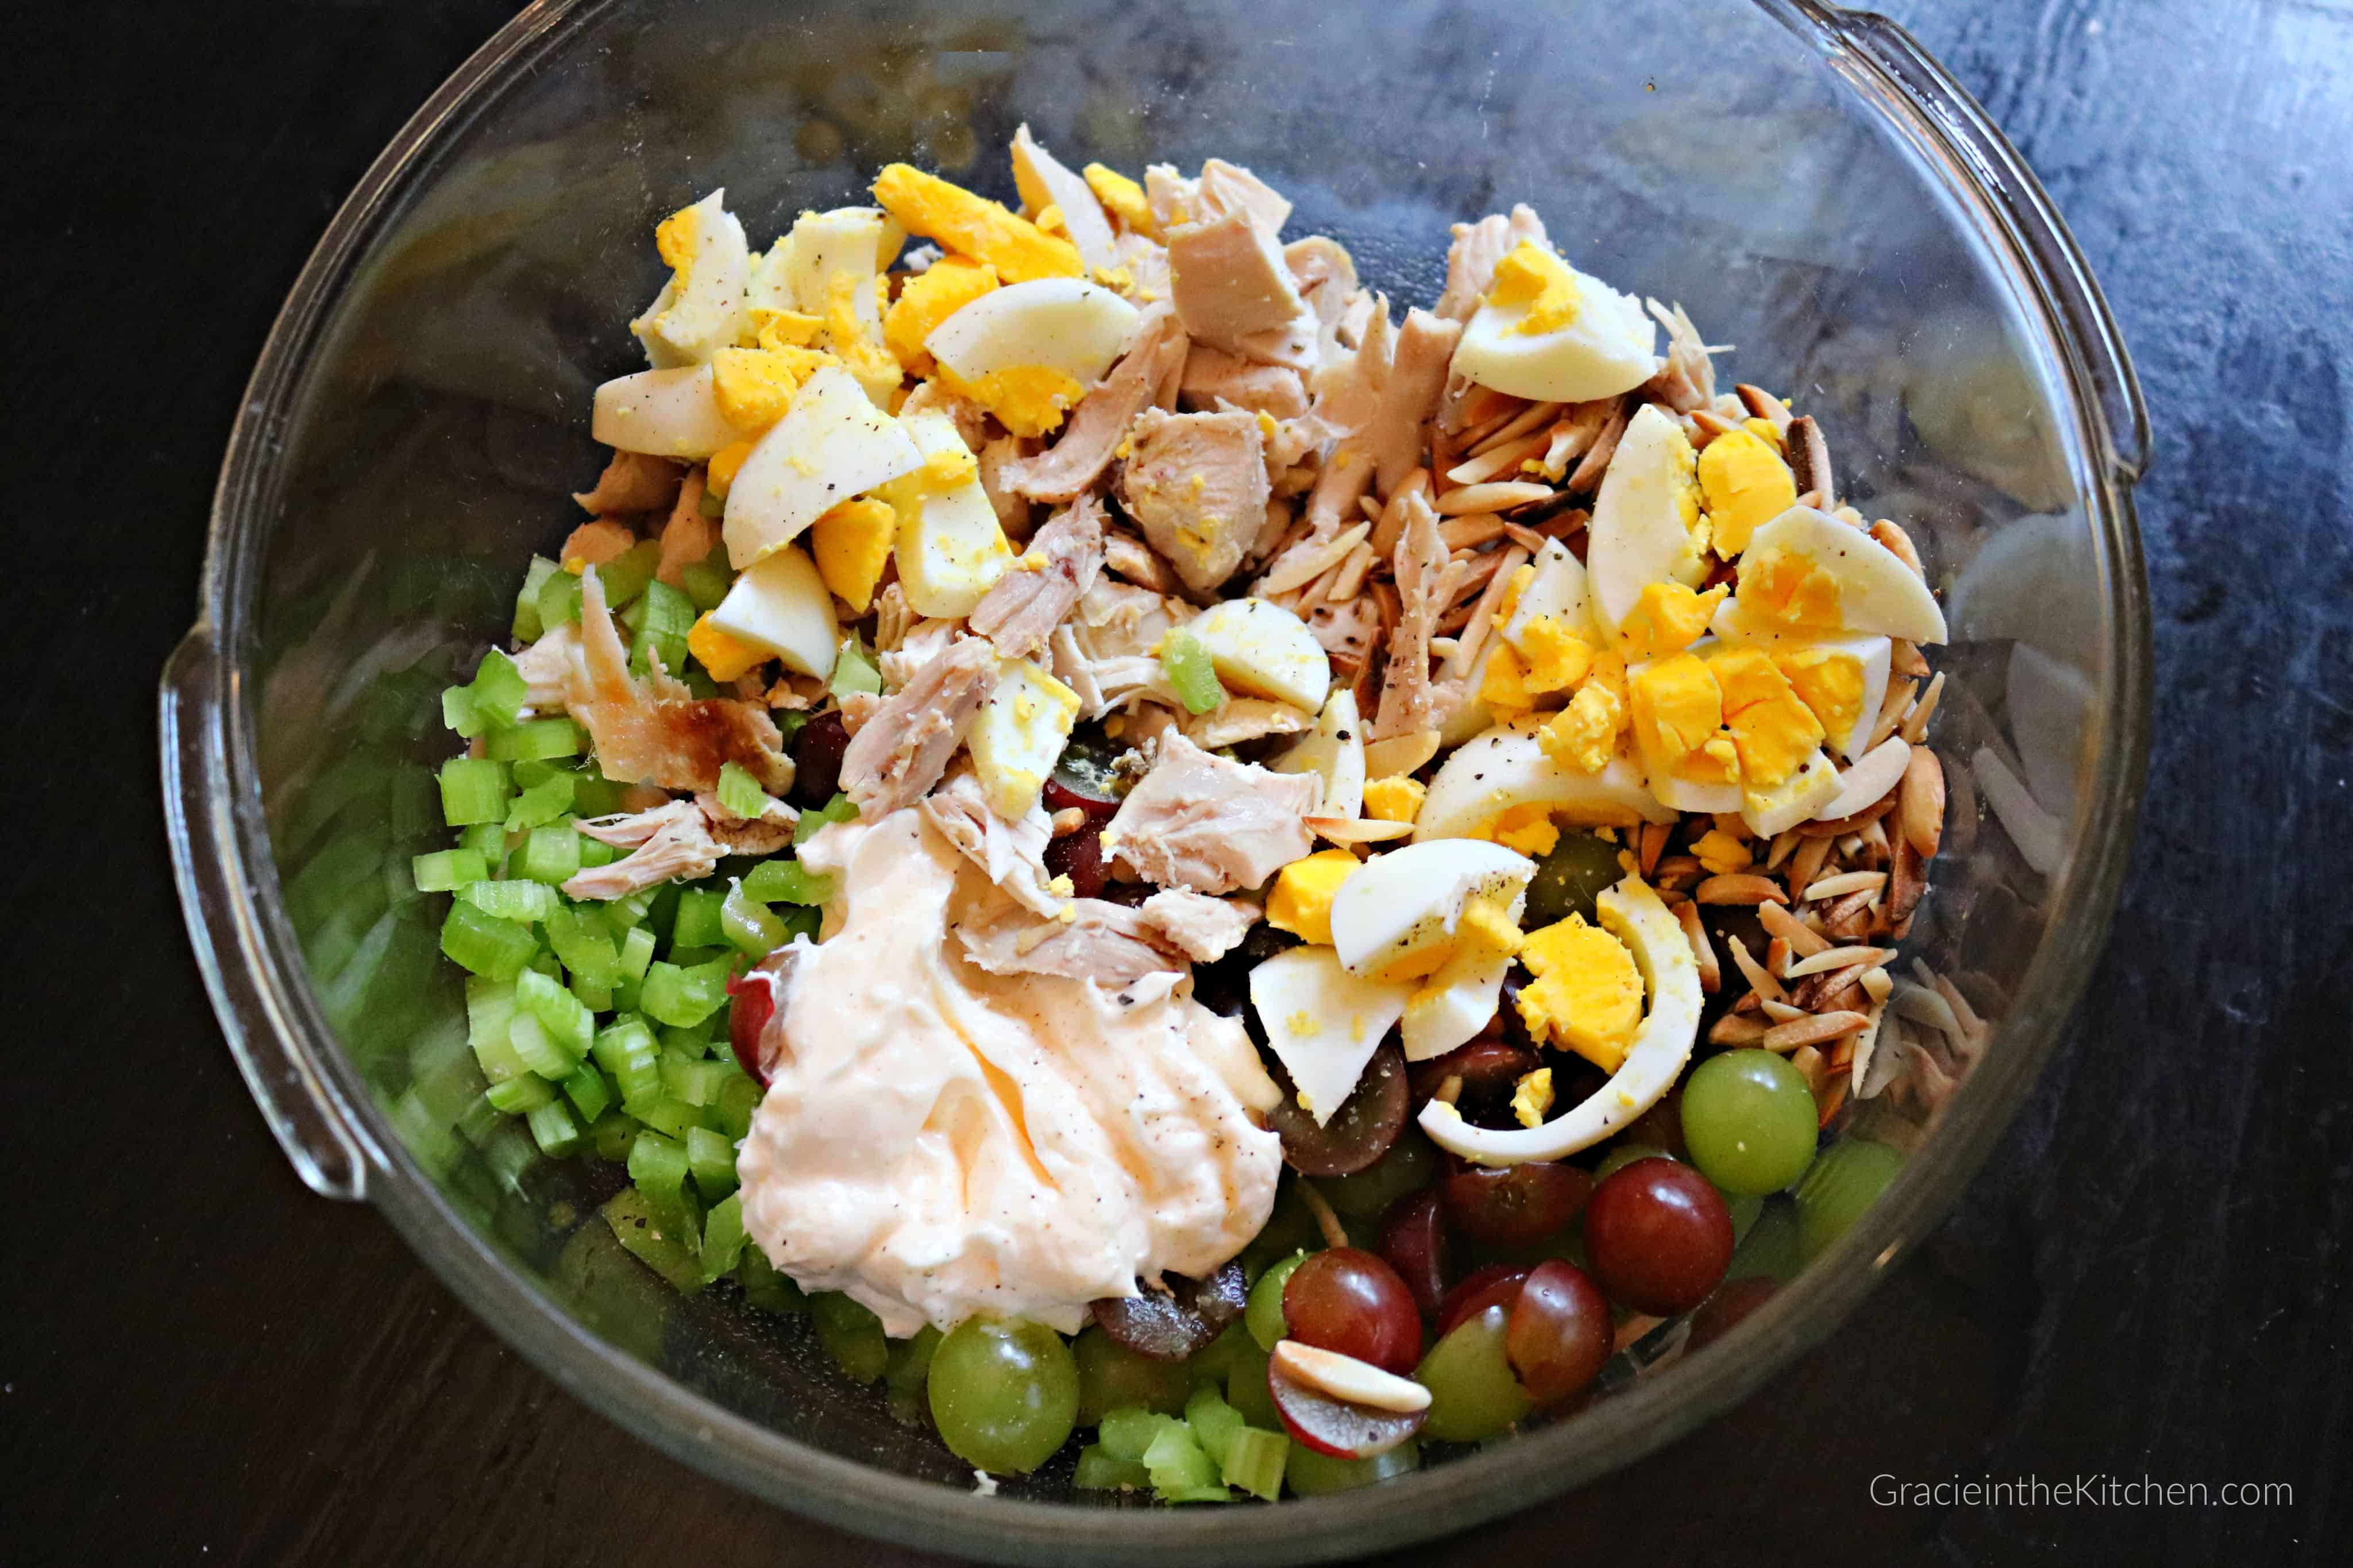 This Almond Chicken Salad Recipe is the Best! So simple and has so much flavor!